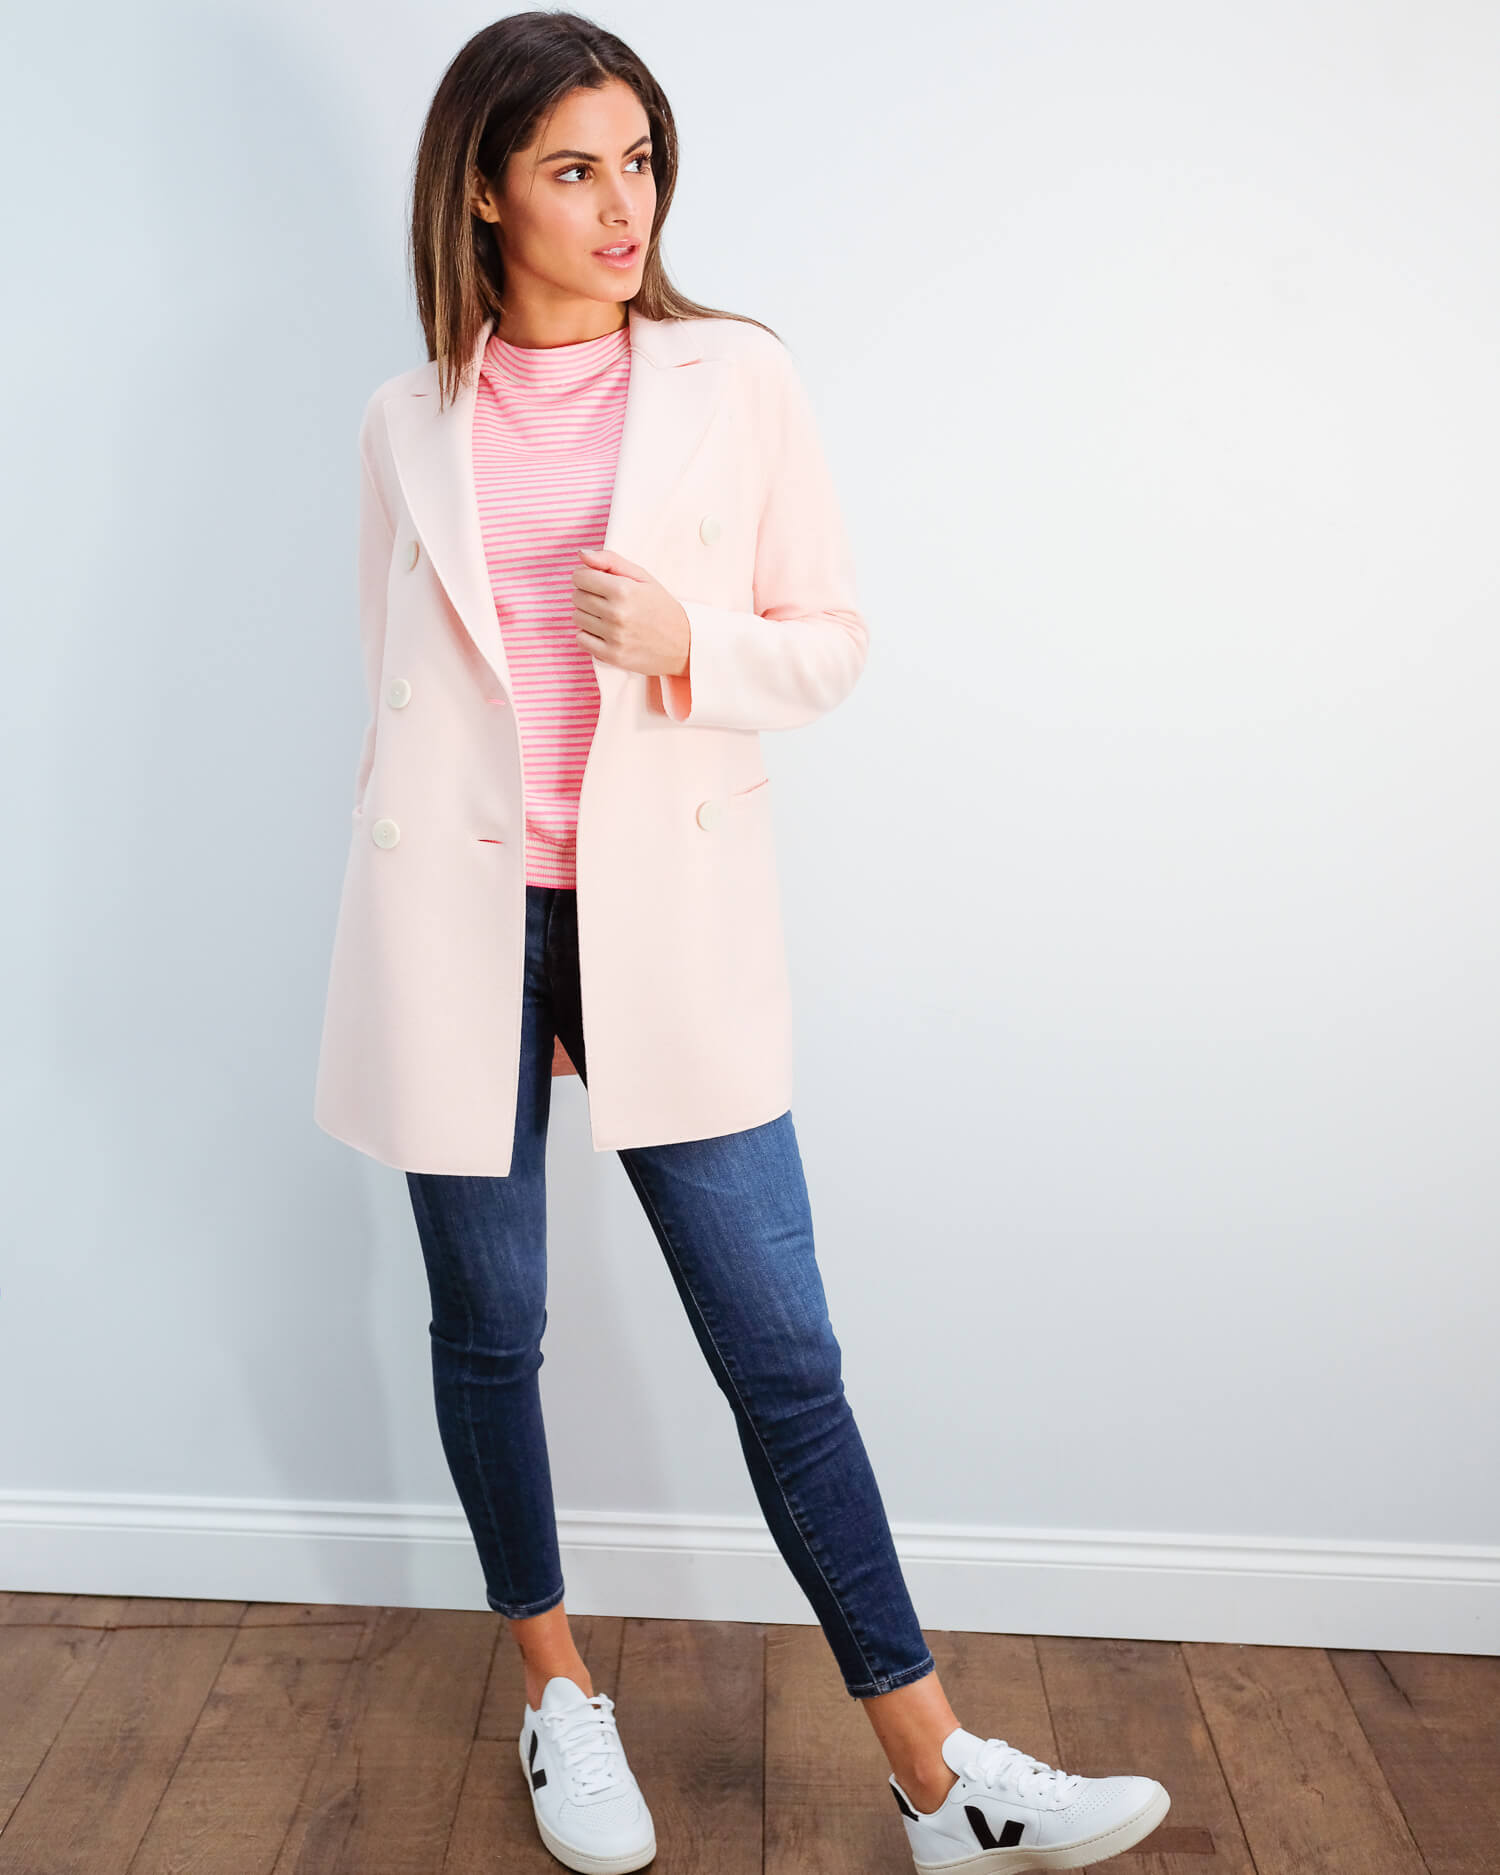 HWL Pressed wool blazer in pastel pink